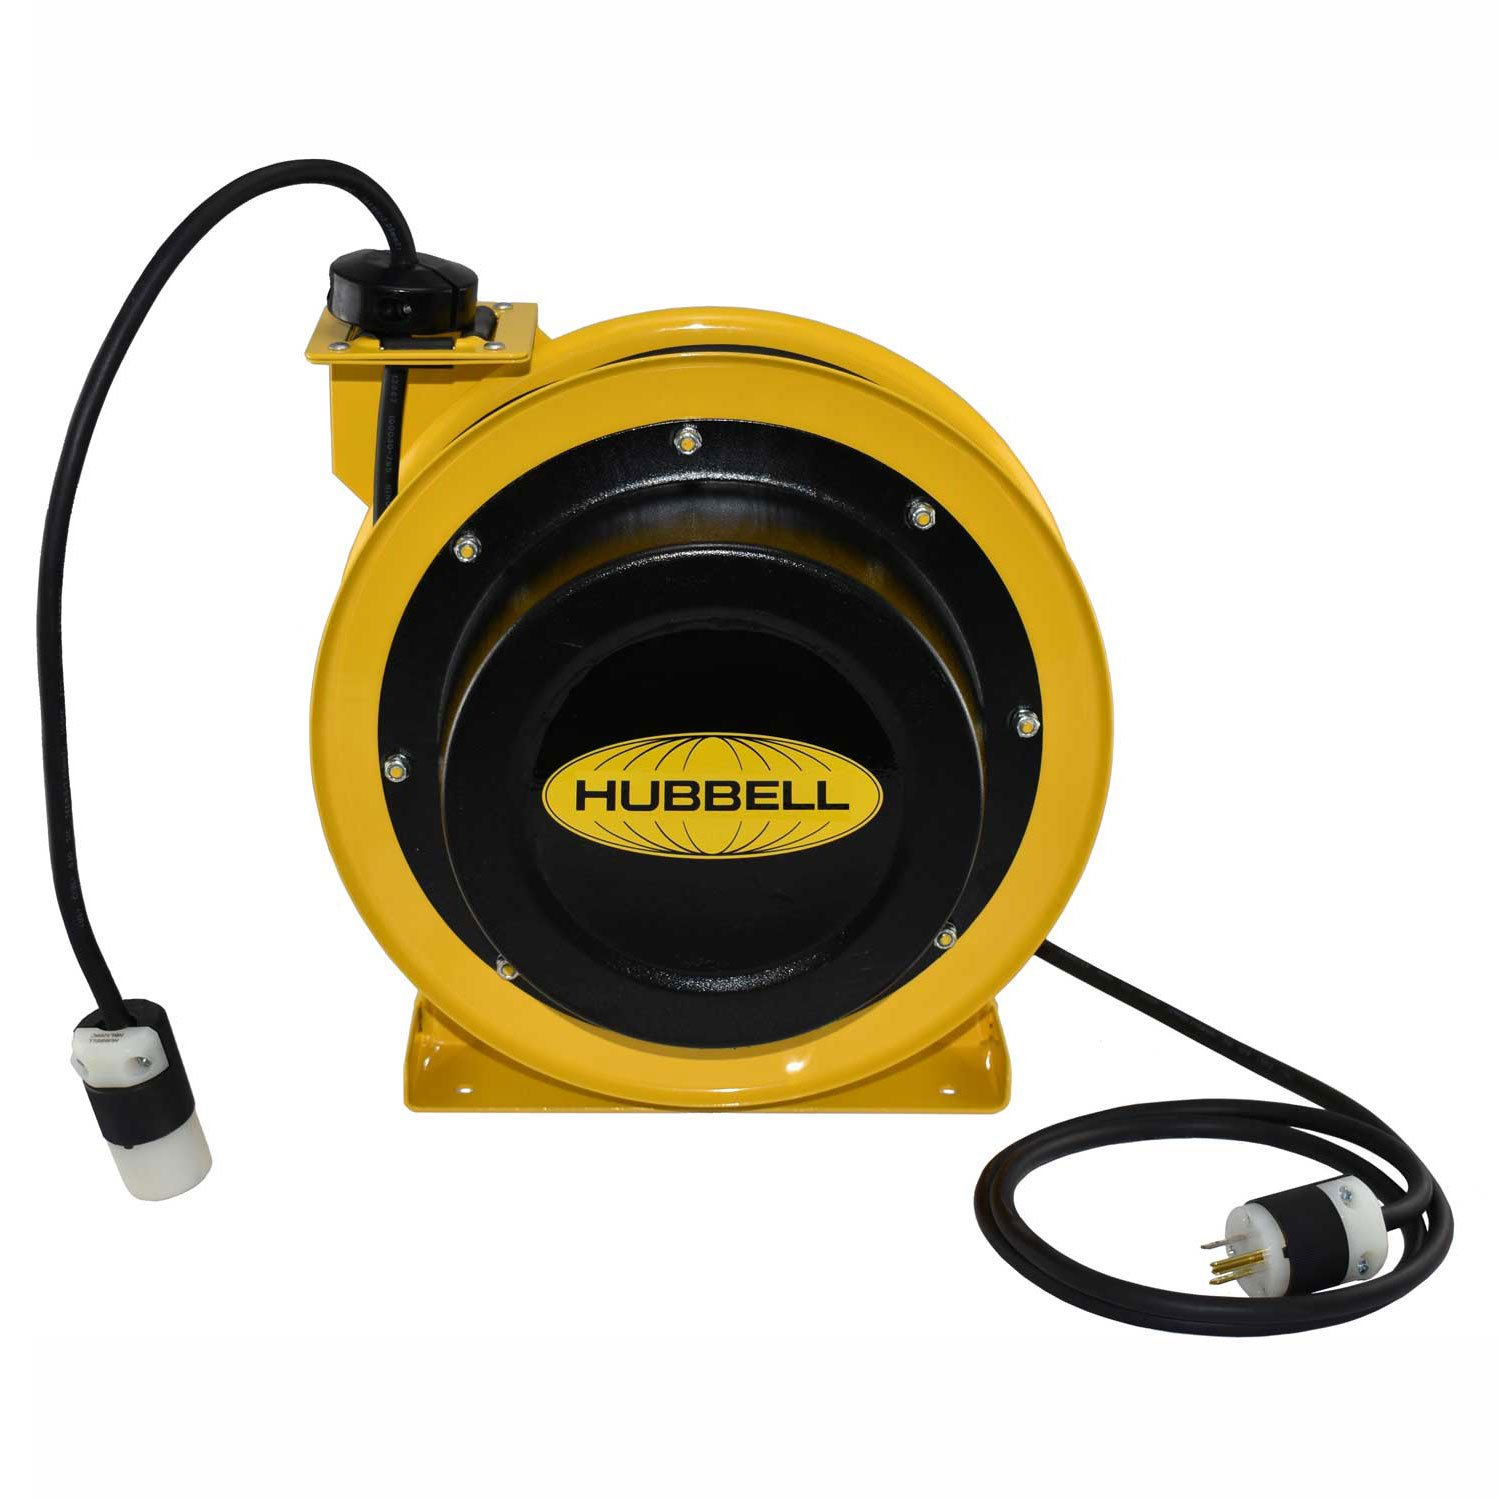 Hubbell GCA12335-SR Industrial Duty Cord Reel with Single Outlet - 12/3c x 35' by Hubbell Gleason